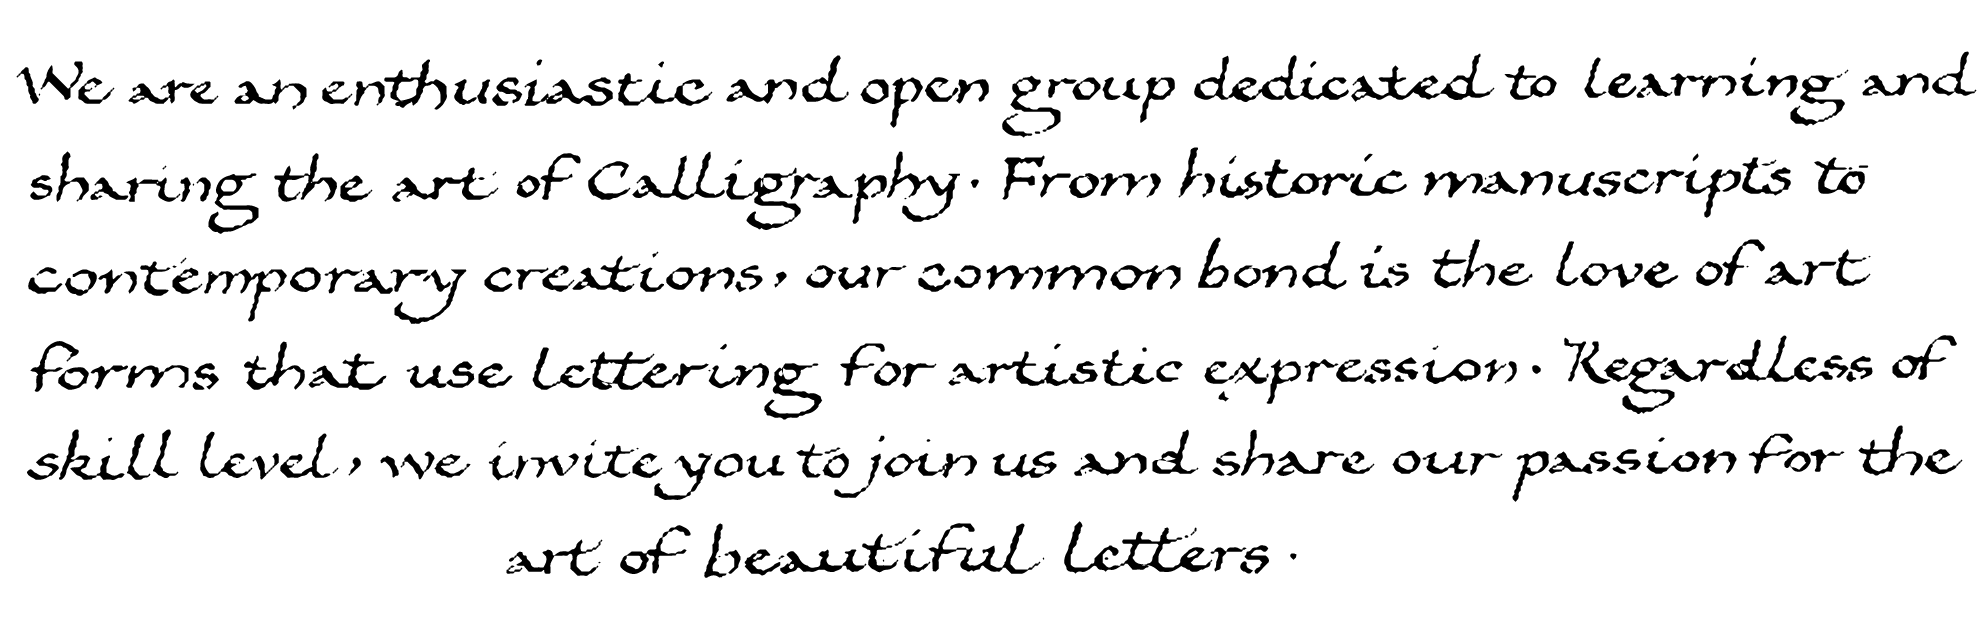 We are an enthusiastic and open group dedicated to learning and sharing the art of Calligraphy. From Historic manuscripts to contemporary creations, our common bond is the love of art forms that use lettering for artistic expression. Regardless of skill level, we invite you to join us and share our passion for the art of beautiful letters.